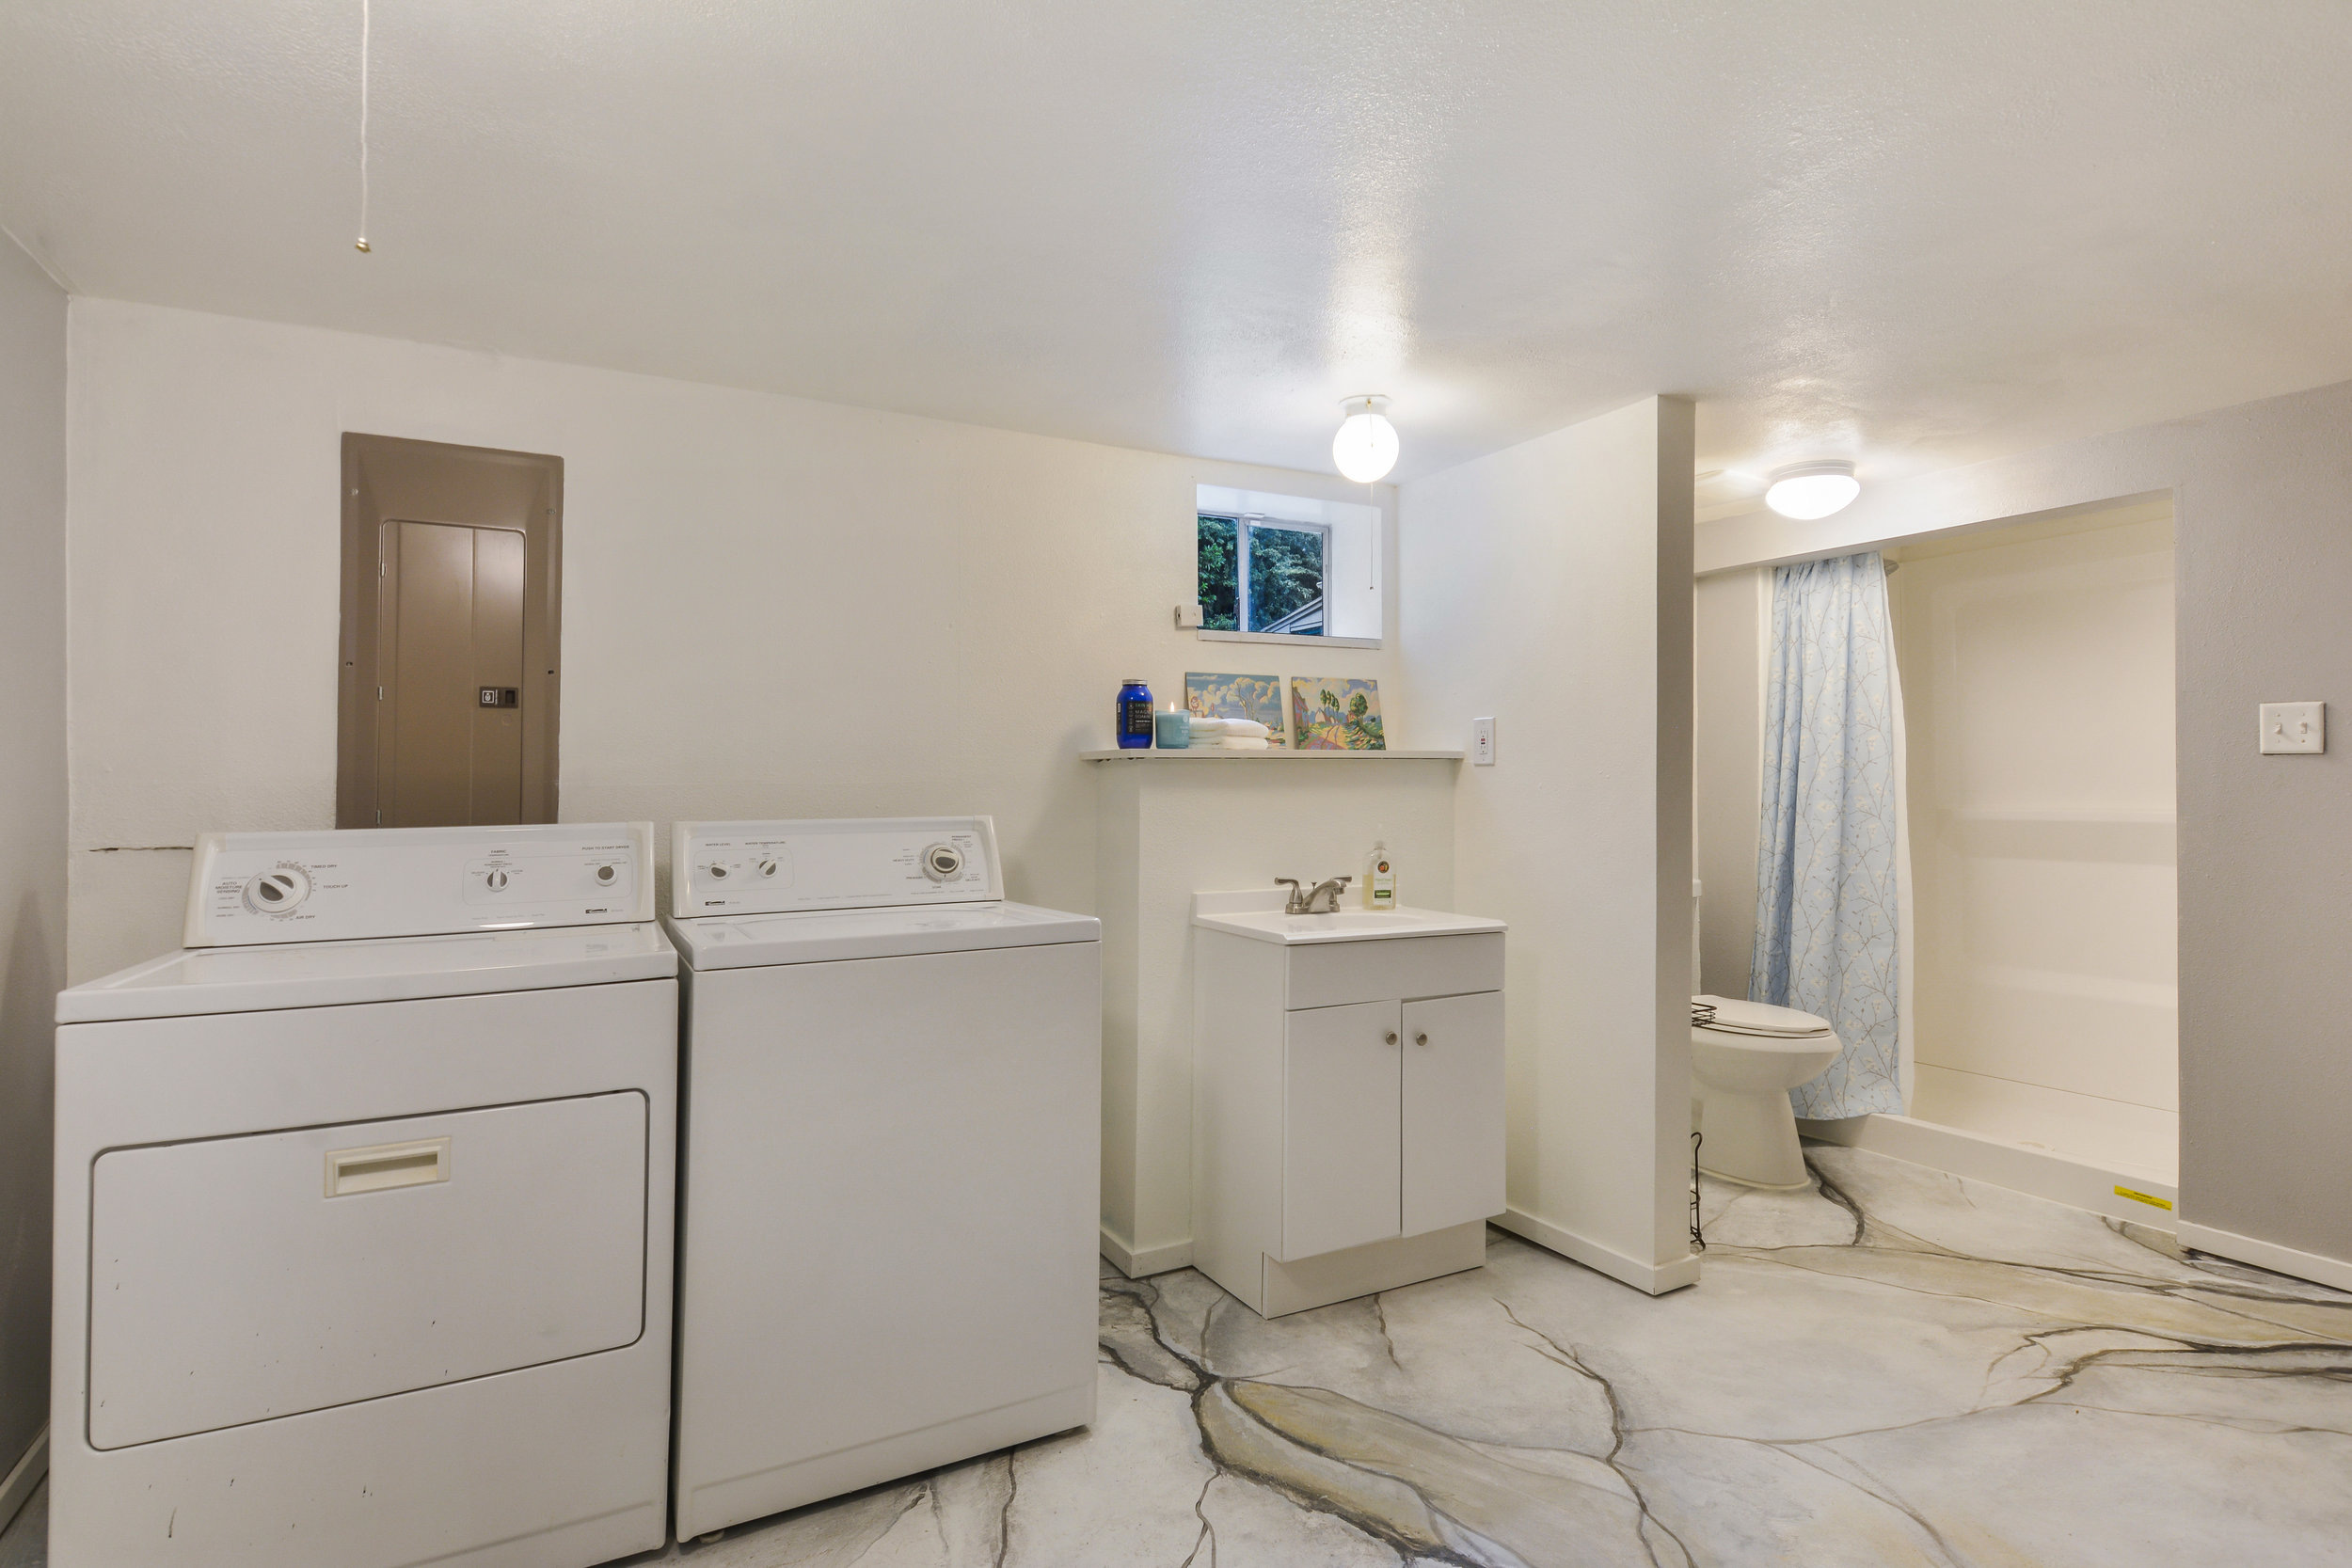 This convenient room includes a shower, toilet, and sink, as well as laundry. Add a table for folding laundry, or shelves along the wall. This room has the space for it.